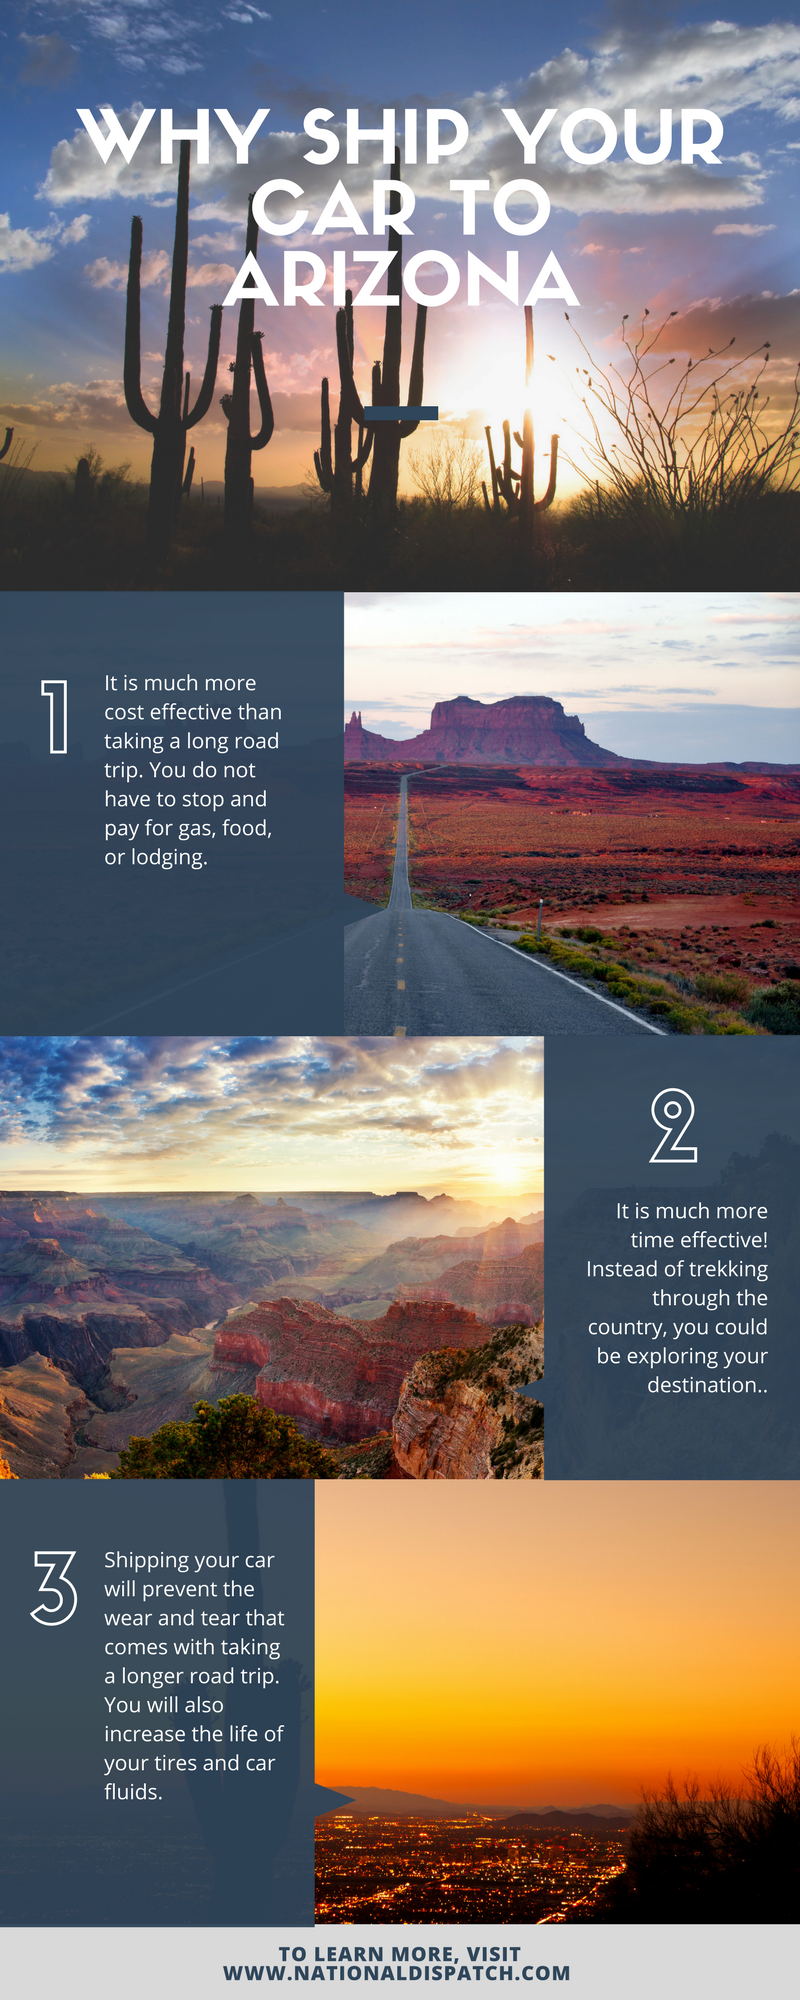 Shipping Car To Arizona Infographic